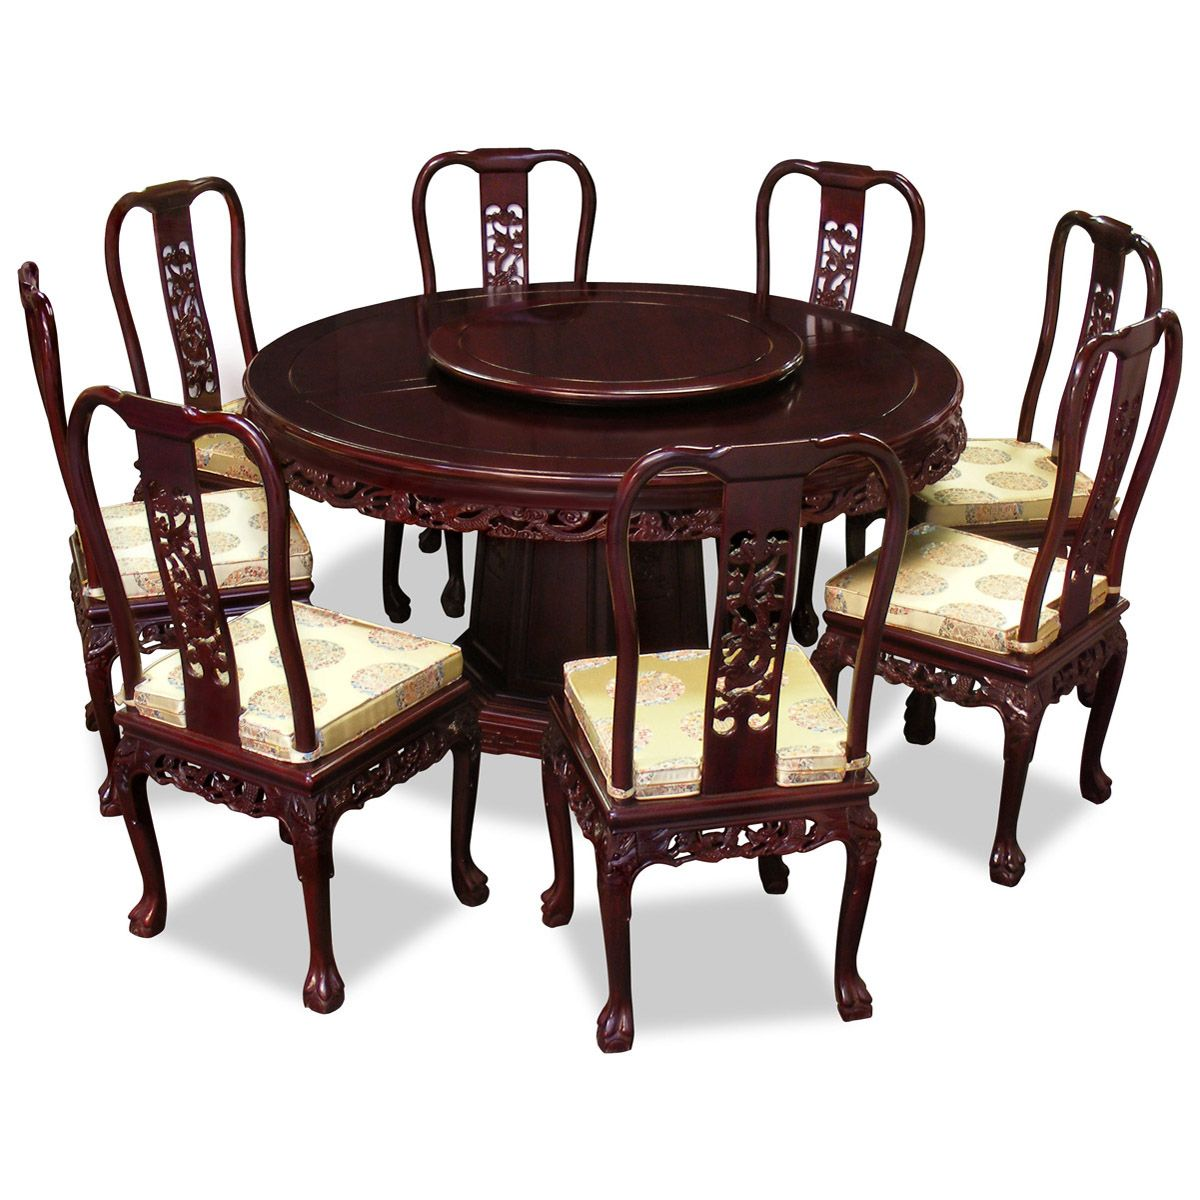 60in Rosewood Imperial Dragon Design Round Dining Table With